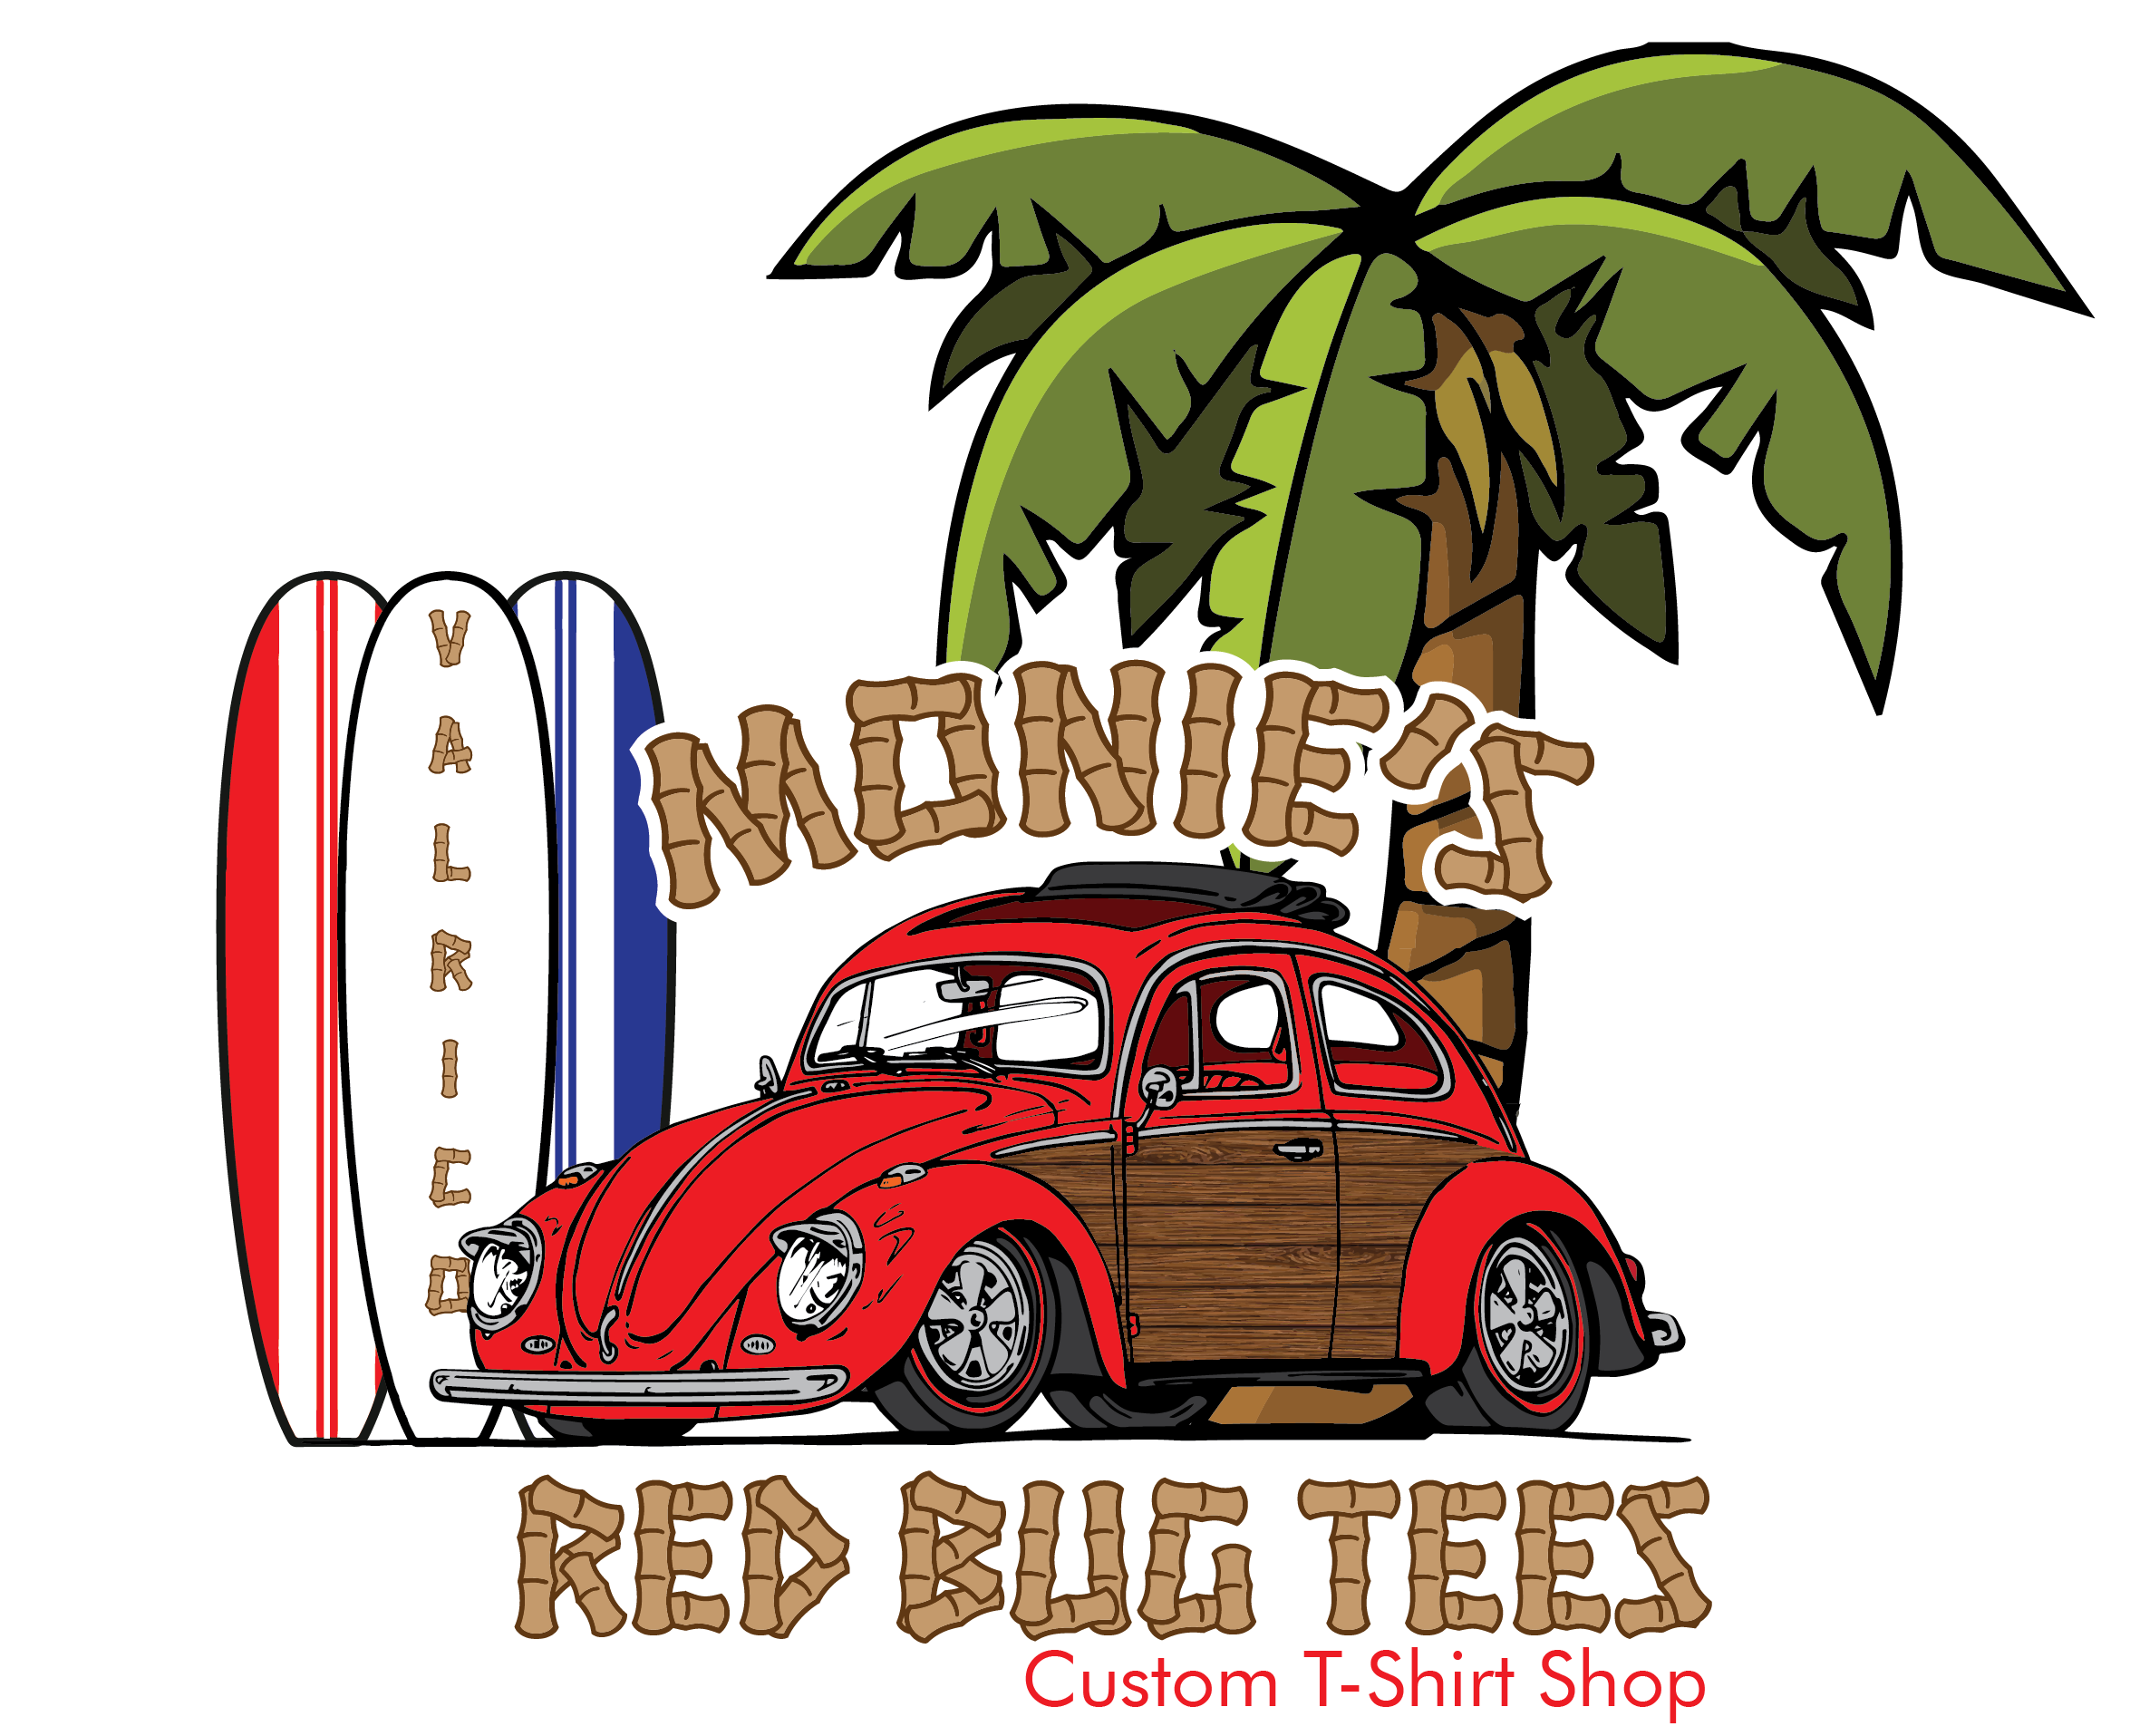 Cheap custom t shirts no minimums red bug tees for Custom logo t shirts no minimum